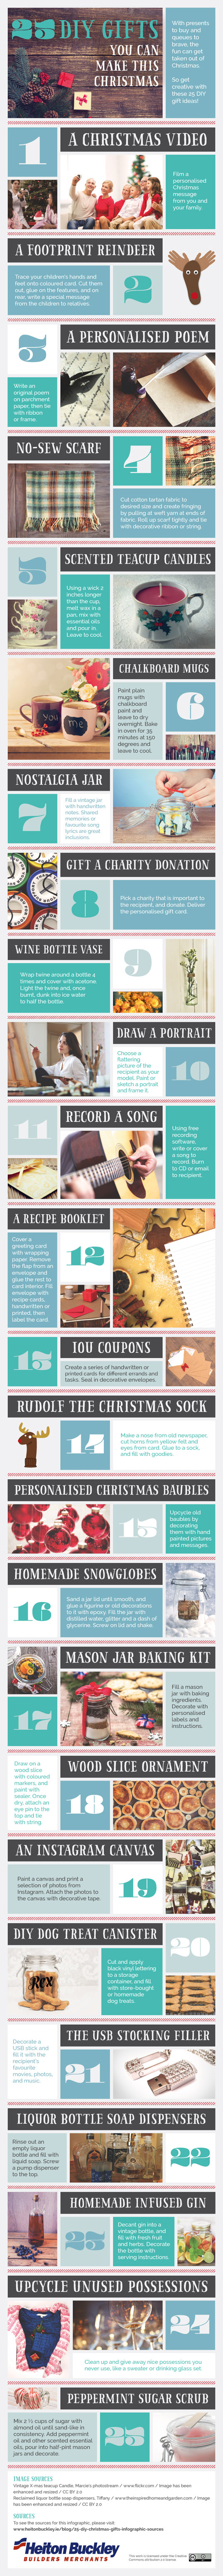 25-christmas-gifts-you-can-make-in-10-minutes